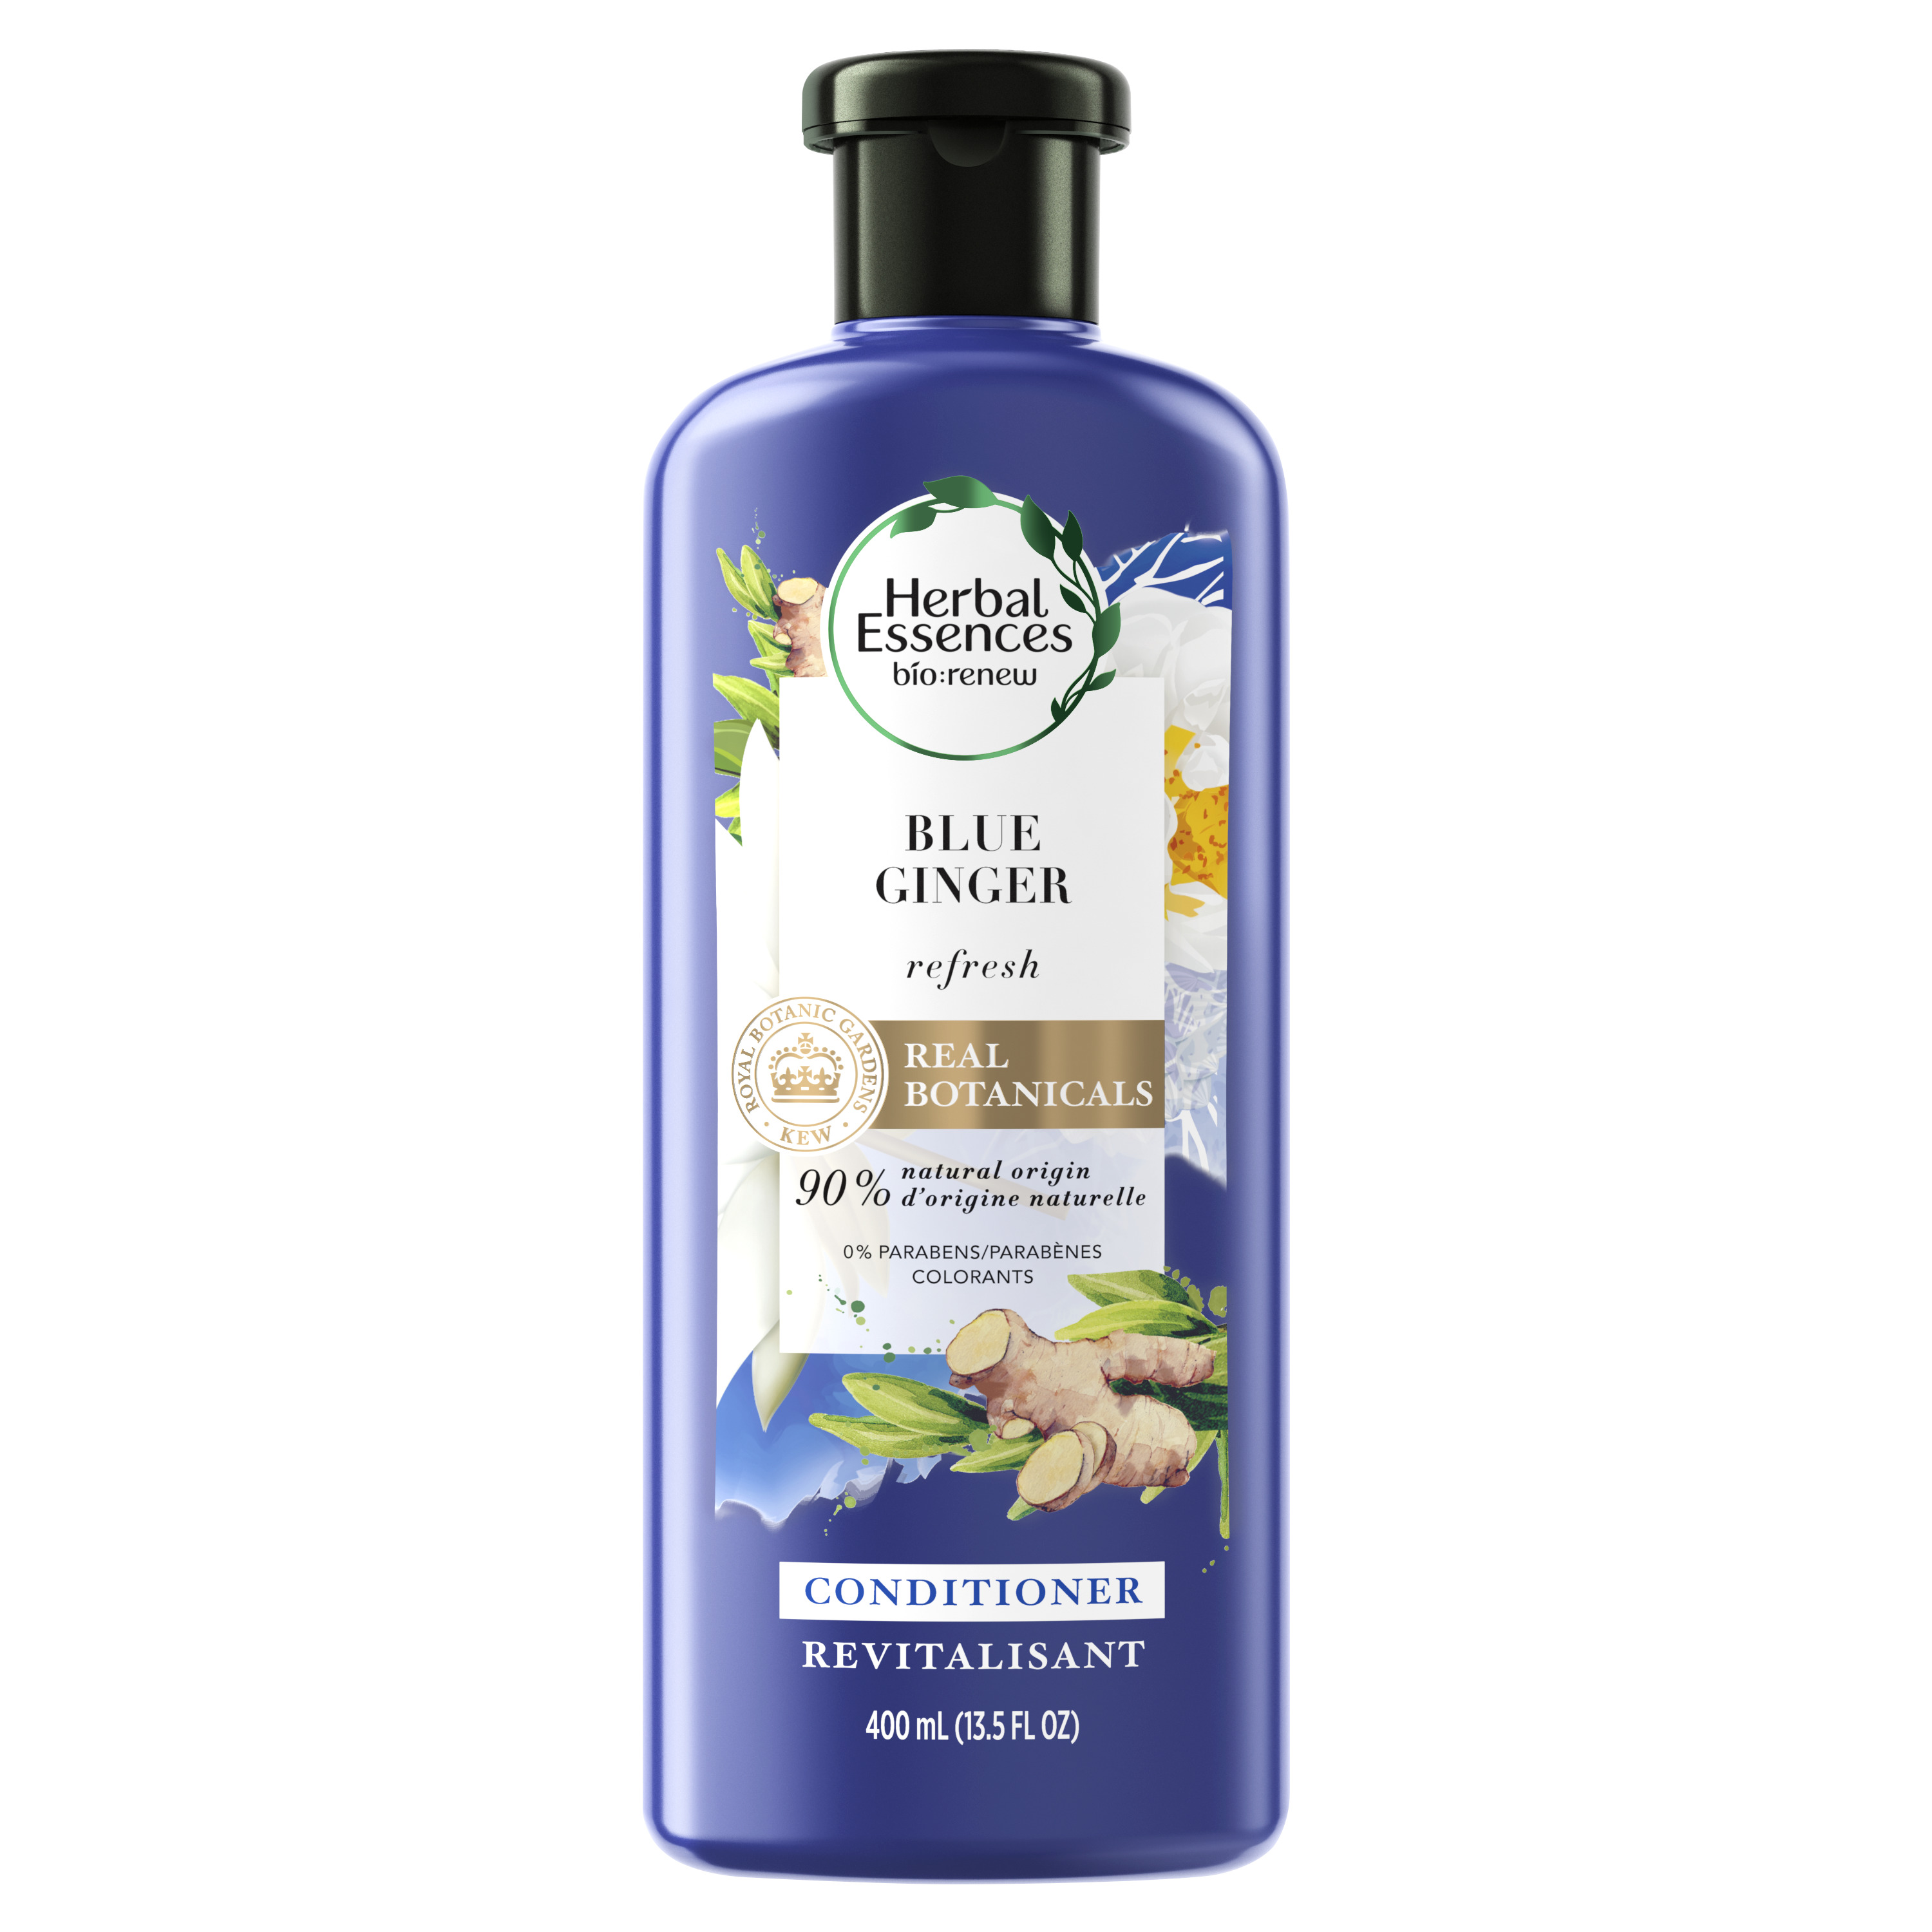 Herbal Essences bio:renew Blue Ginger Refresh Conditioner, 13.5 fl oz